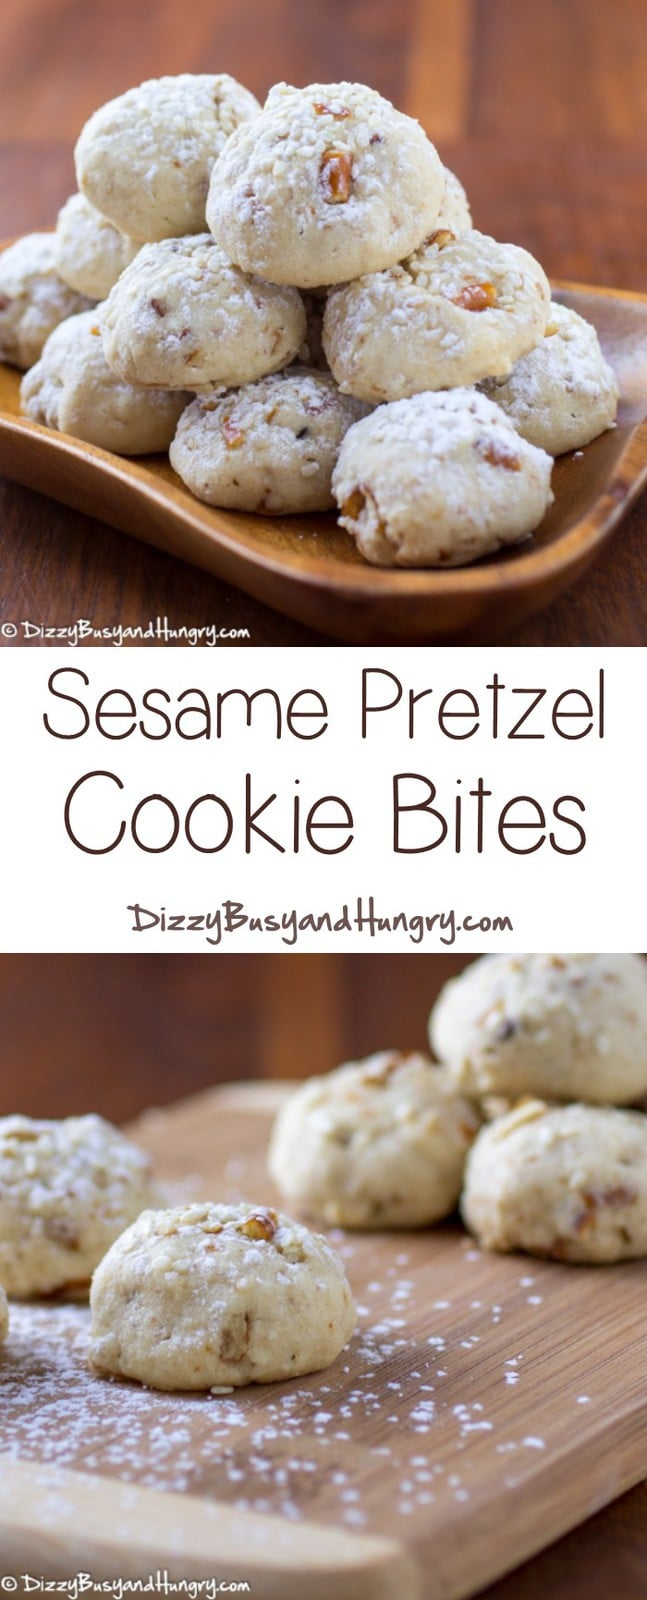 Sesame Pretzel Cookie Bites | Dizzy Busy and Hungry - Buttery, sweet, and salty, these melt-in-your-mouth cookies are super-easy to make and totally delicious!